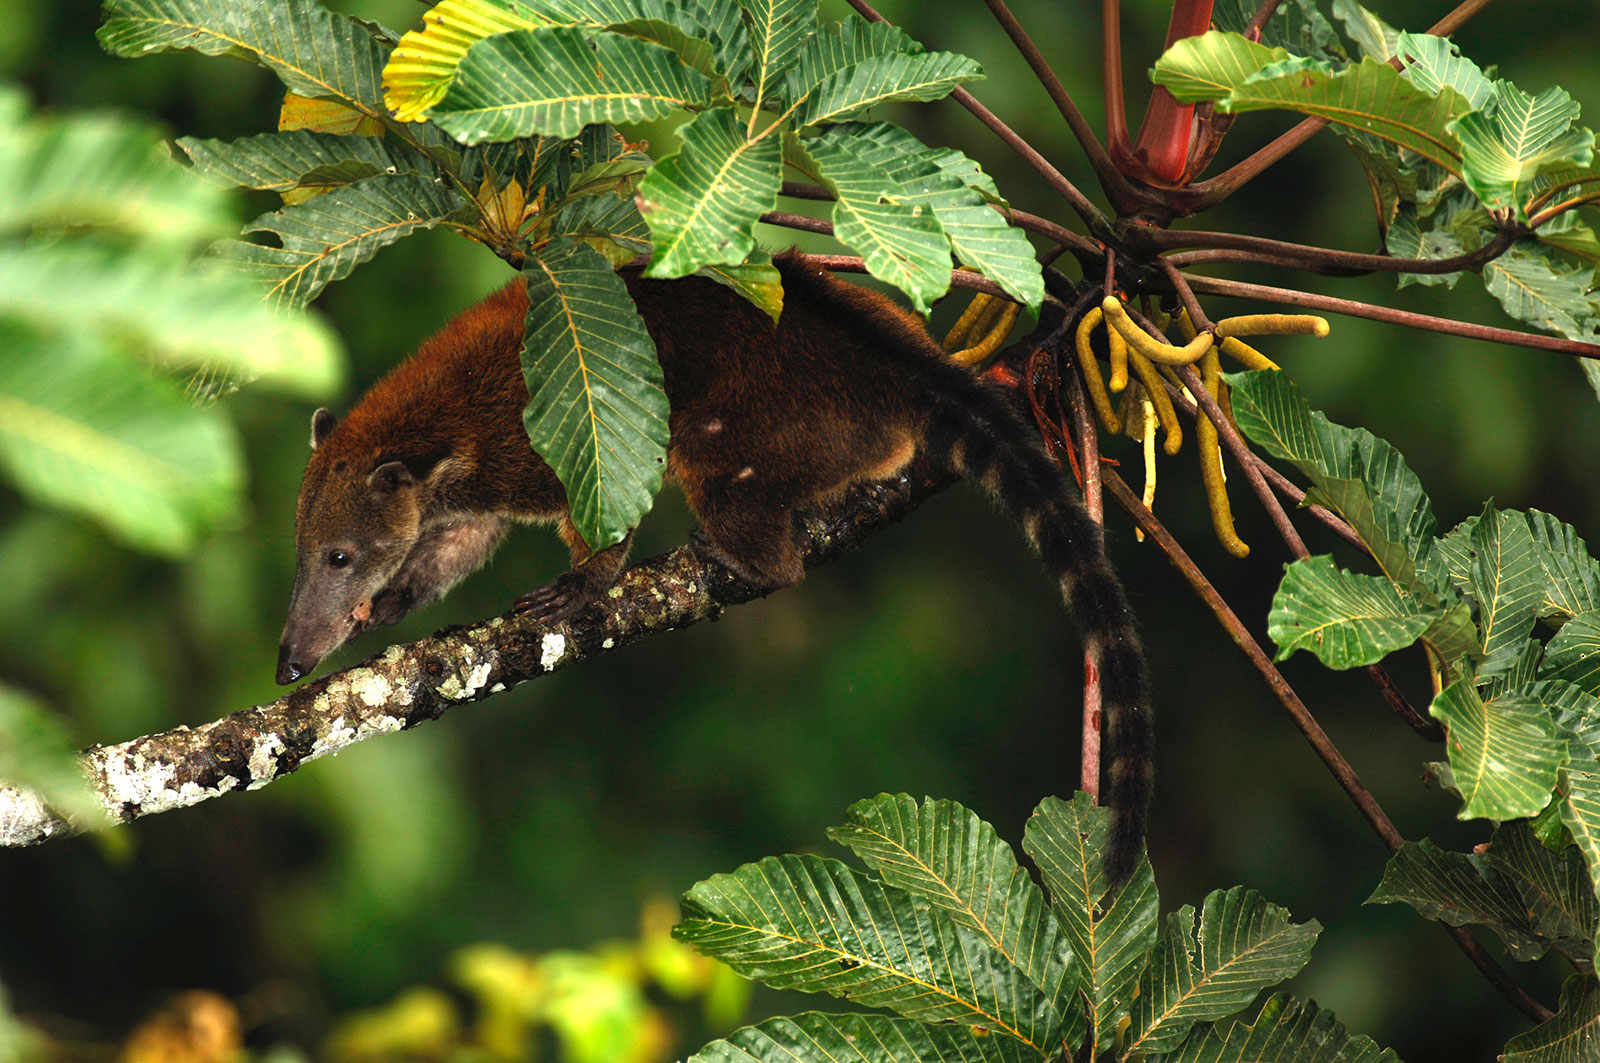 A coati climbs through the trees